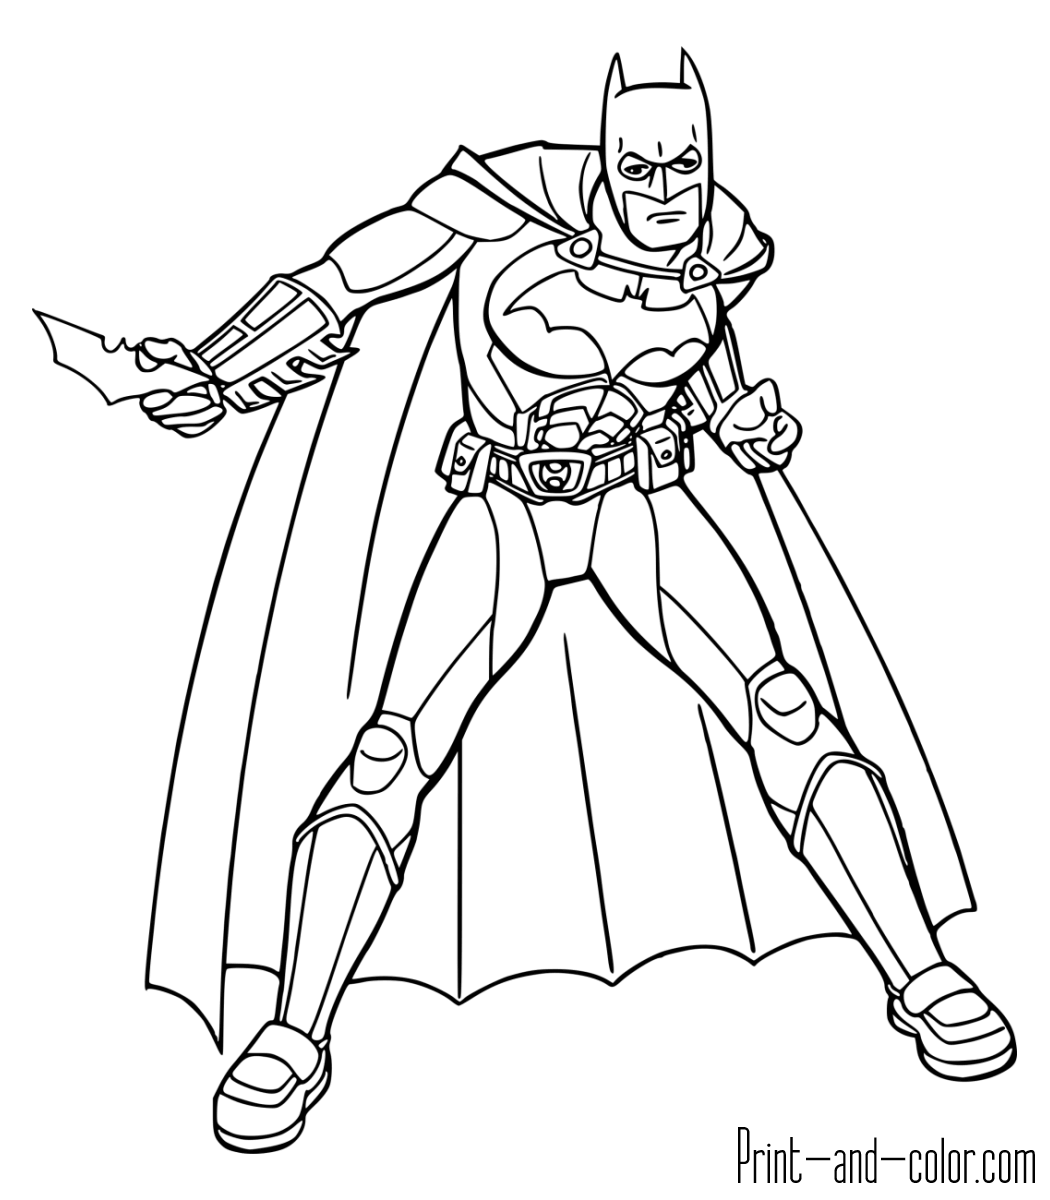 1050x1200 Fascinating Batman Arkham Knight Coloring Page